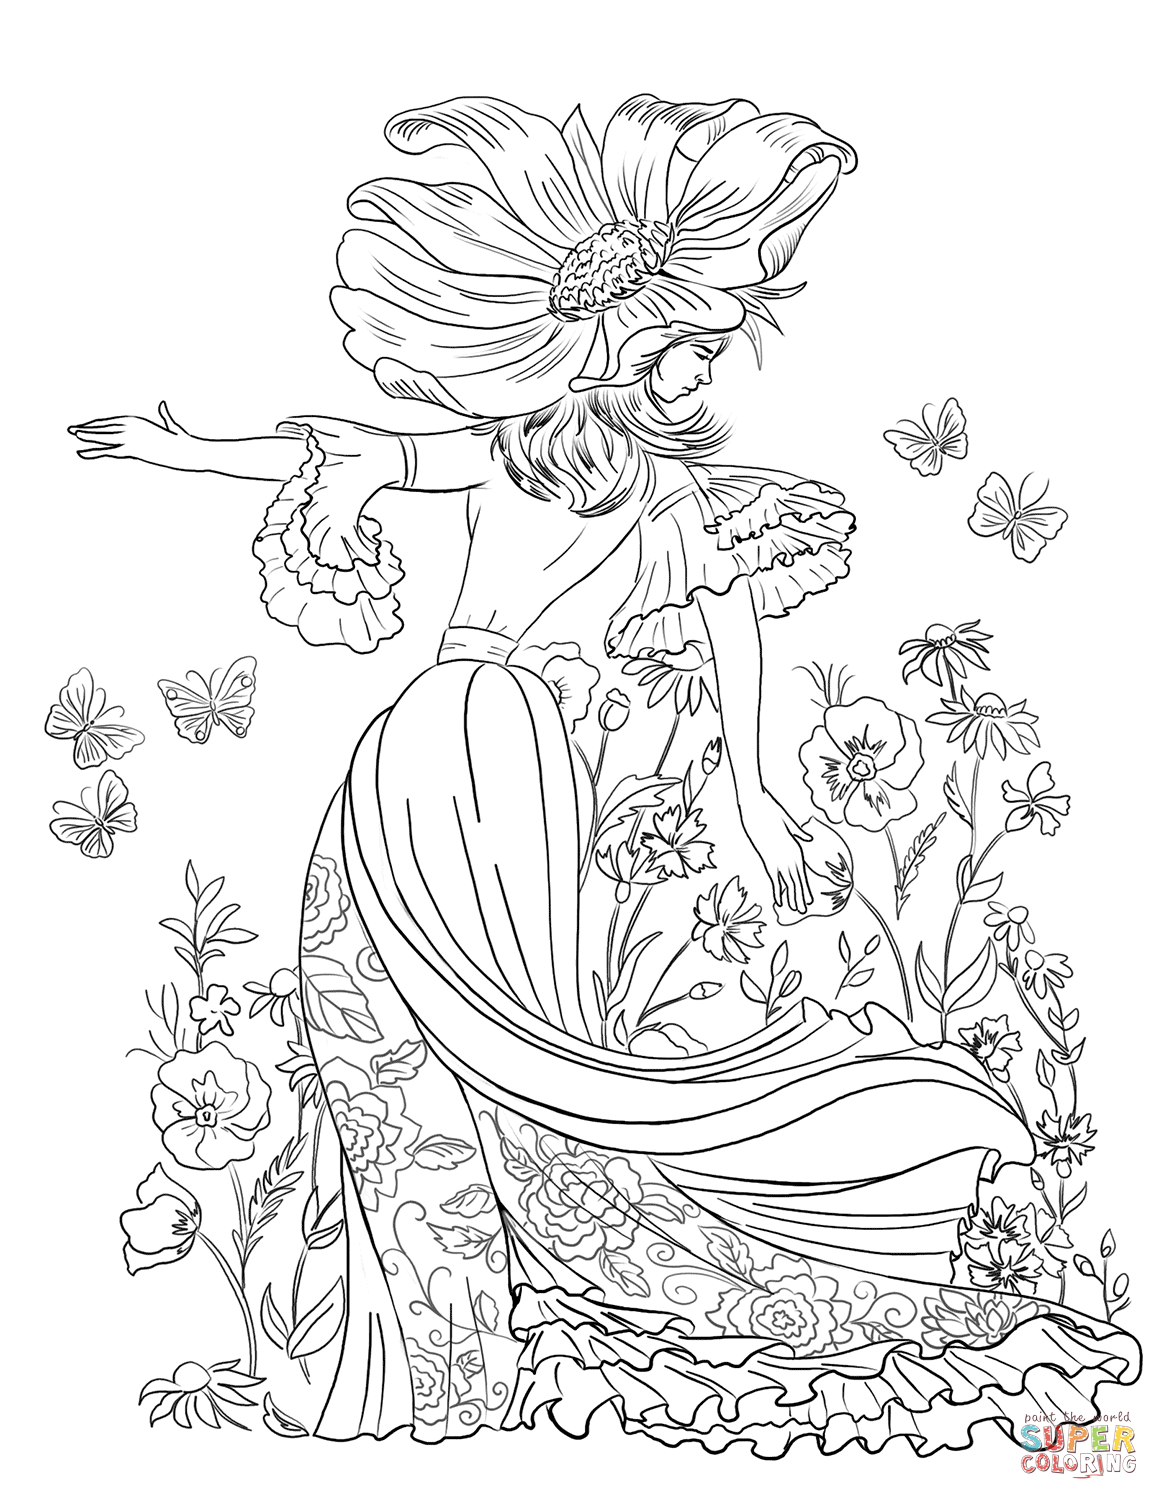 How to draw a daisy, queen of wildflowers 59